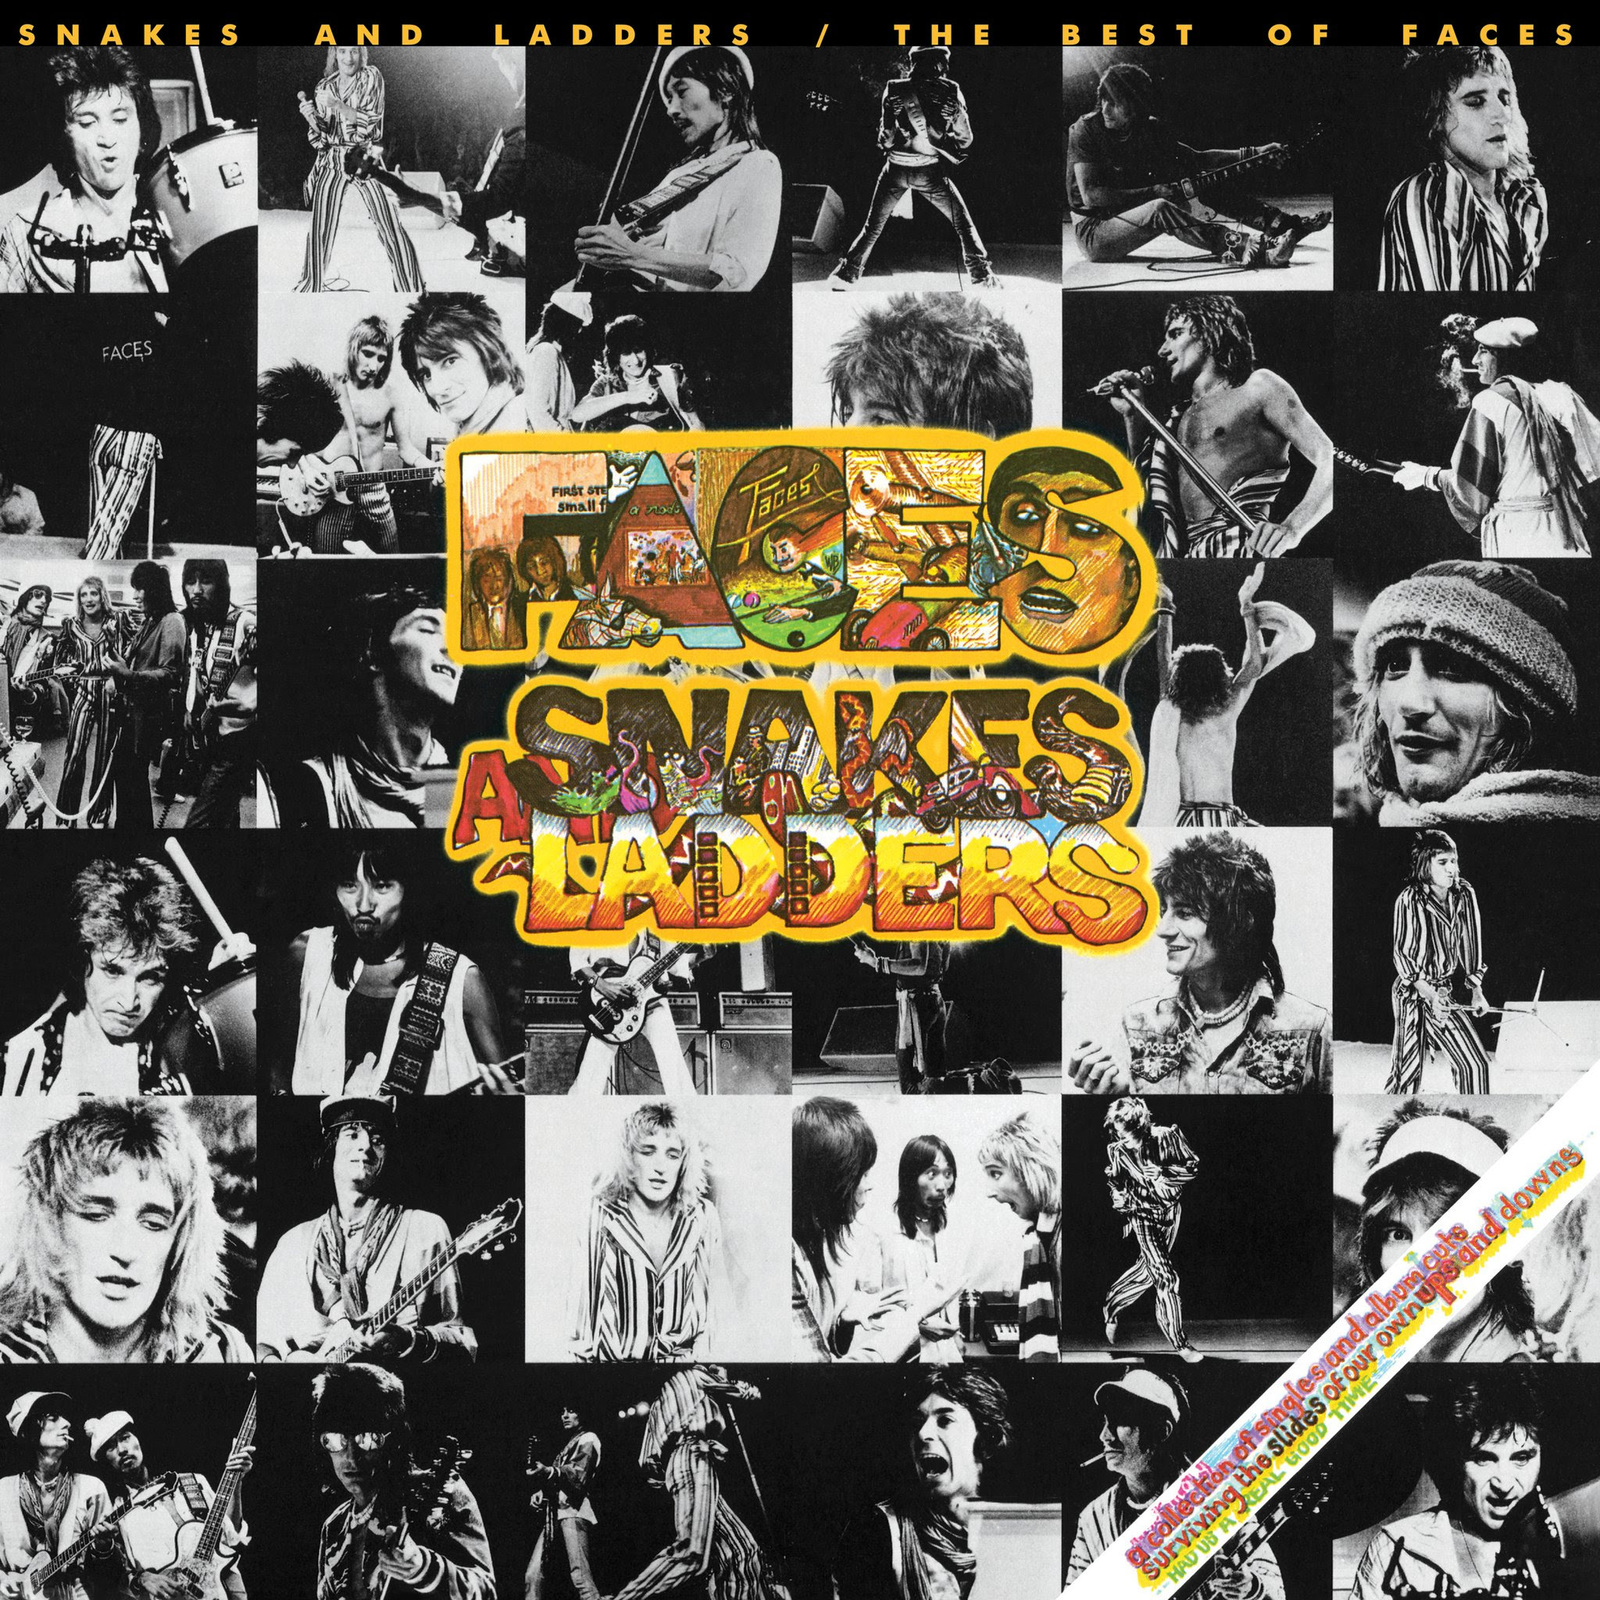 Snakes and Ladders / The Best of the Faces (LP) by Faces image